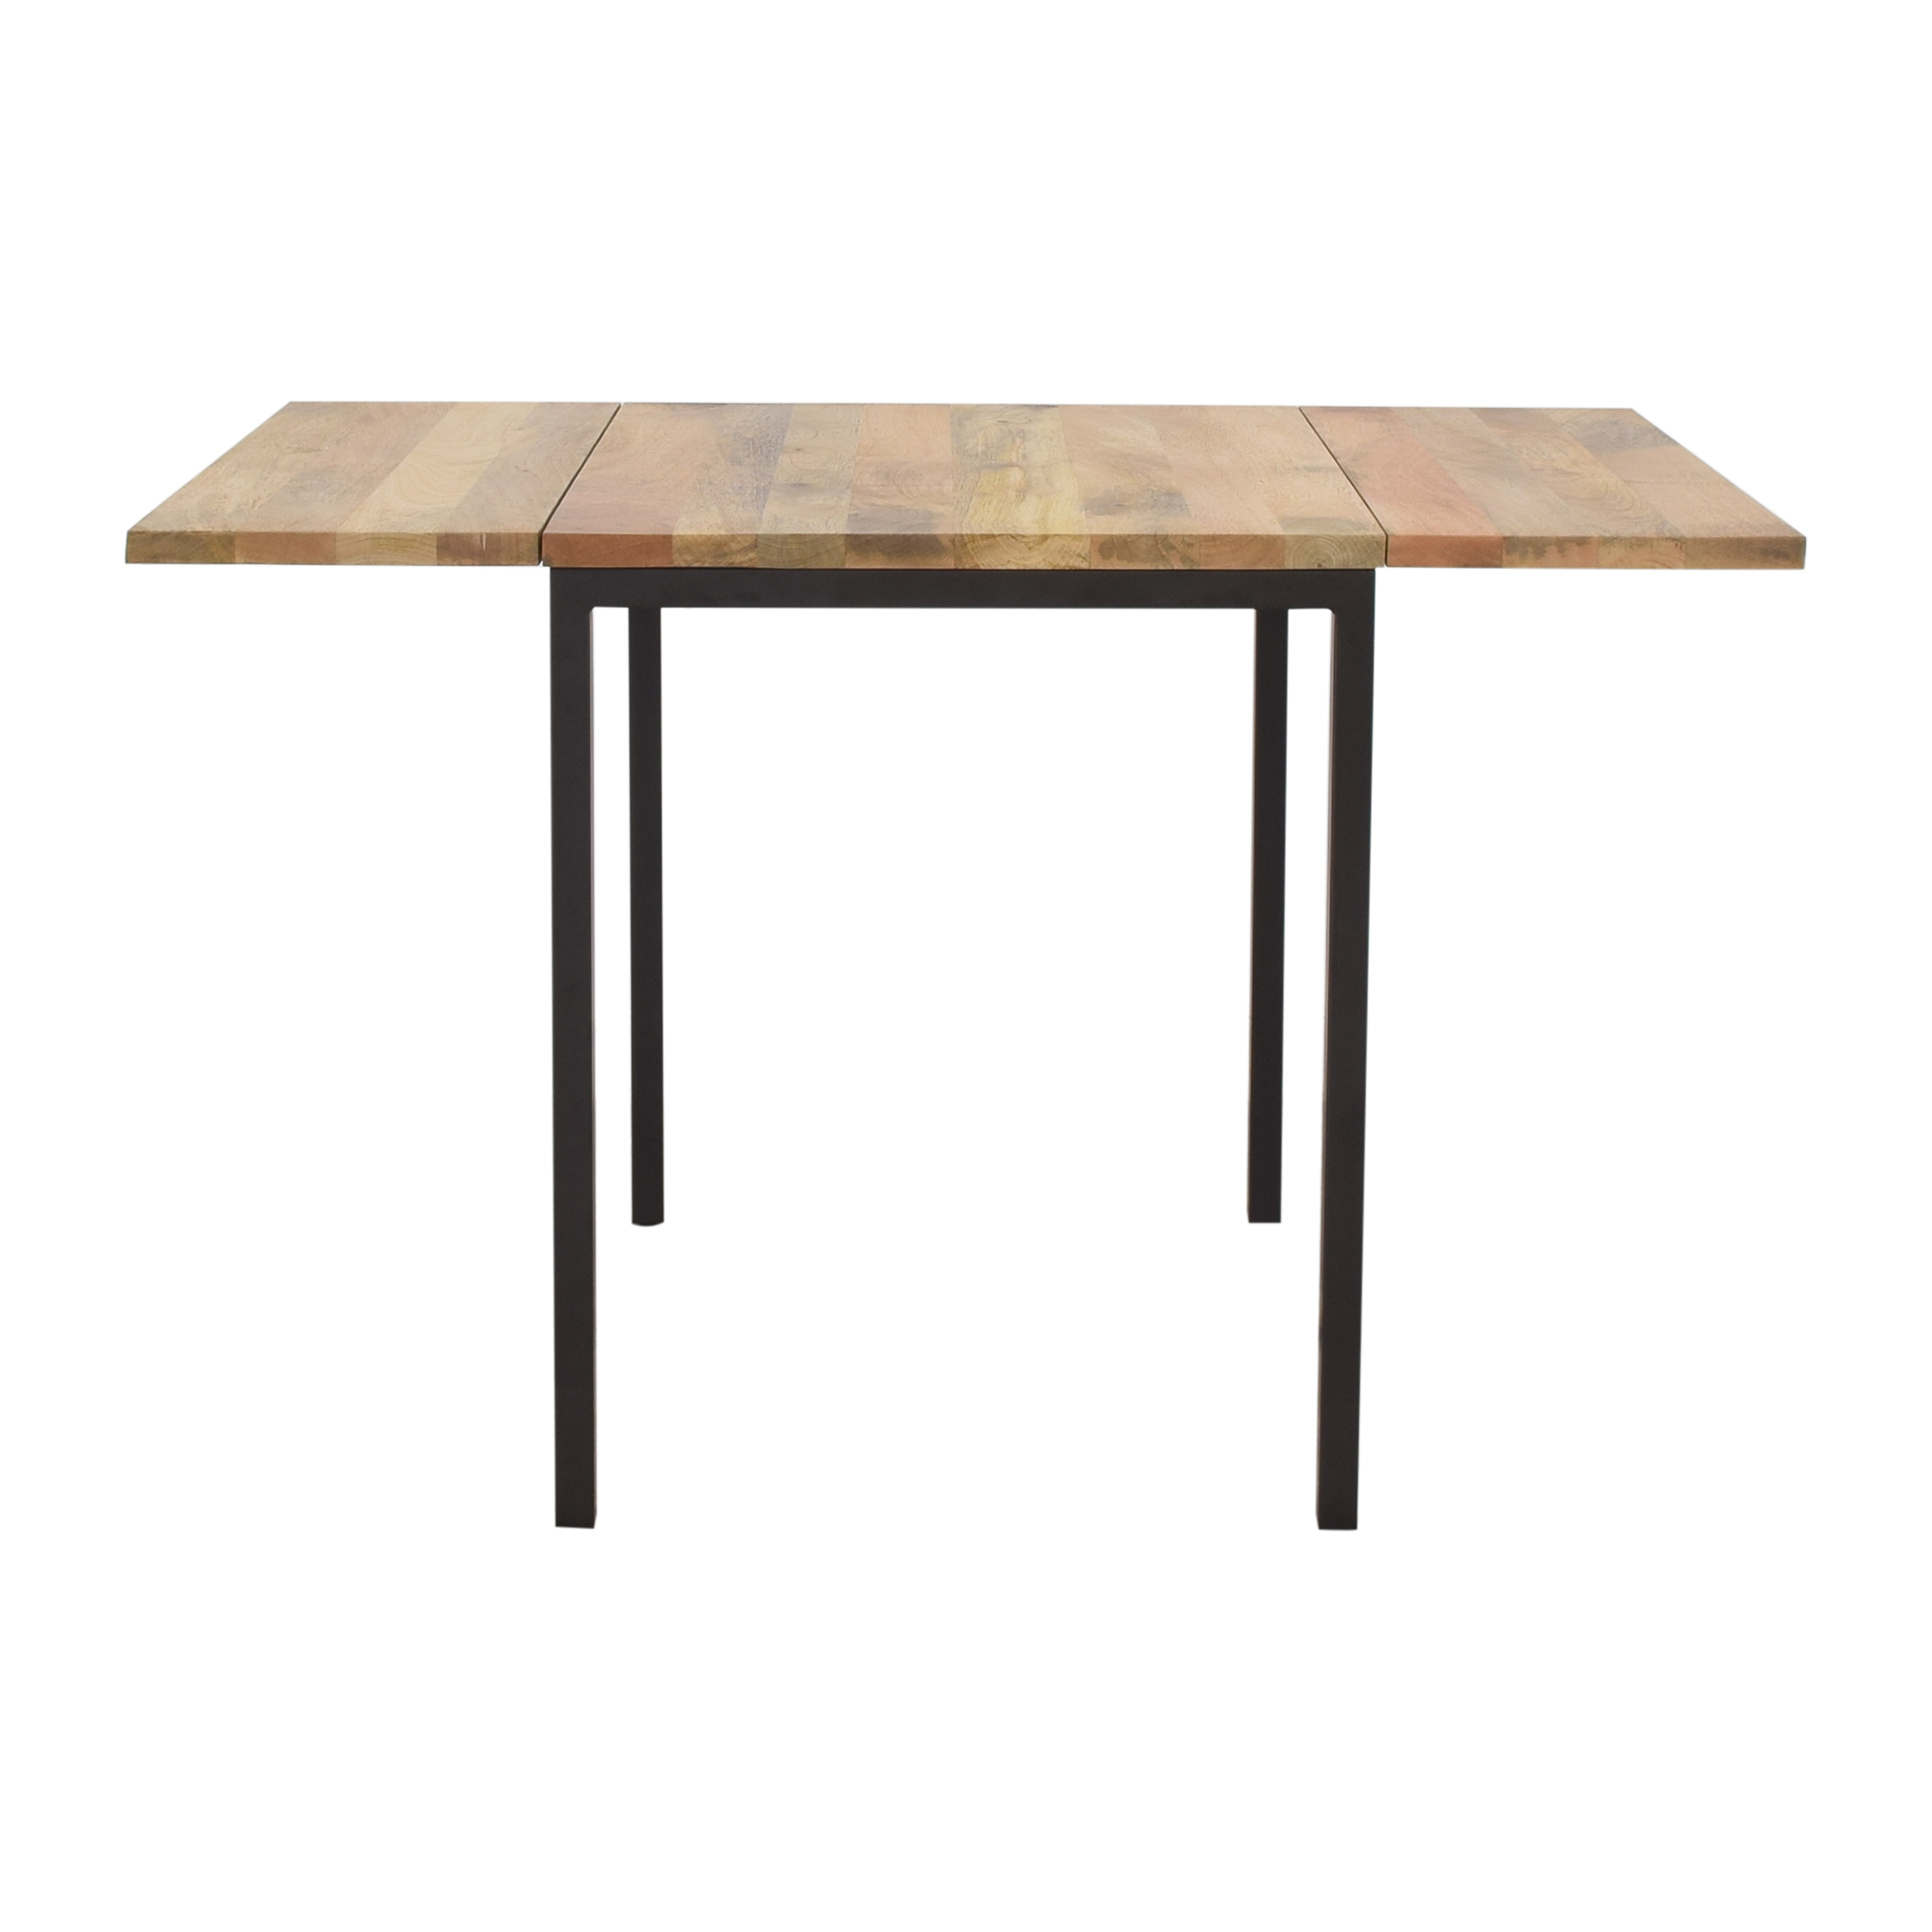 West Elm West Elm Box Frame Drop Leaf Dining Table ct